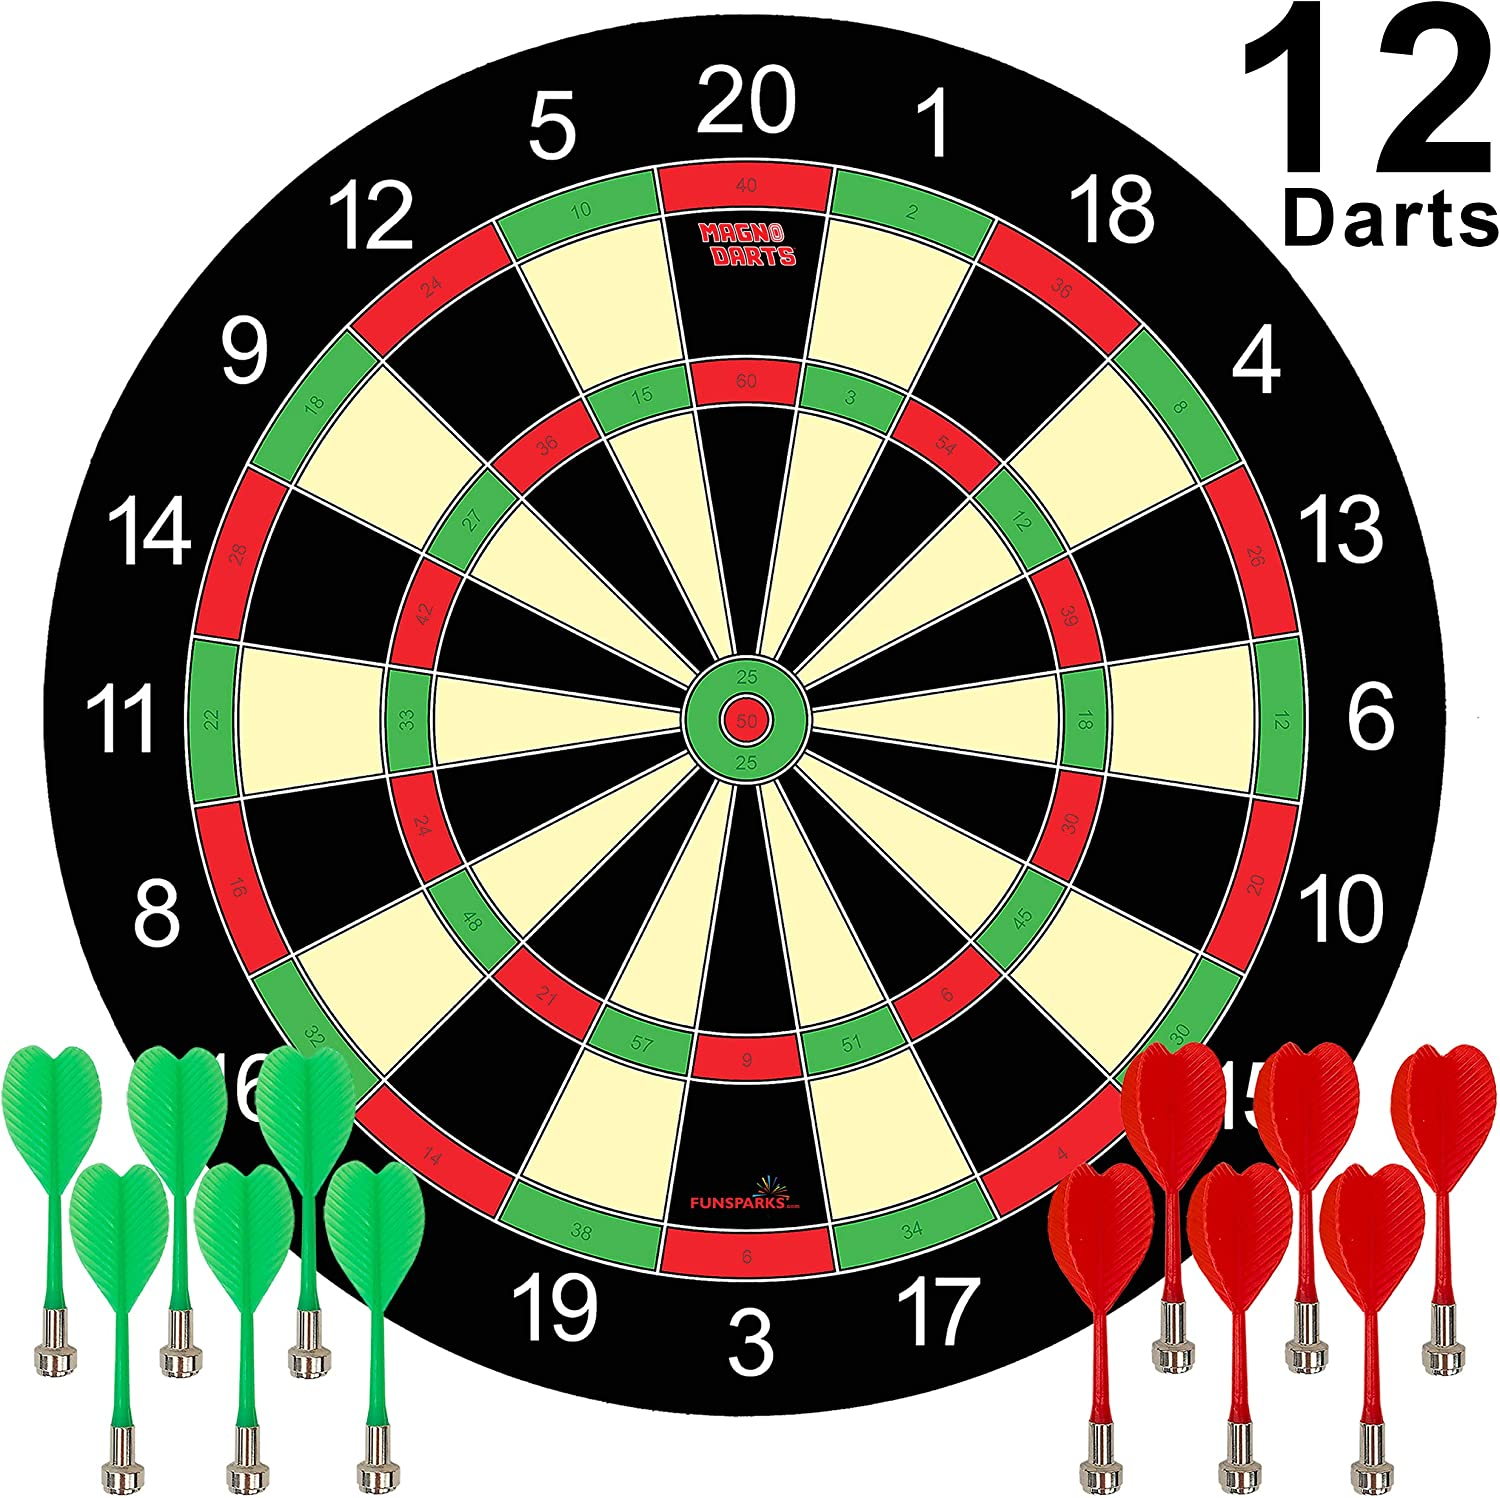 Magnetic Dart Board Game - 12 Darts - 6 Green and 6 Red Darts – Best Kids Toy Gift Indoor Outdoor Games for Family and Friends – Safe Dart Game Set: Toys & Games